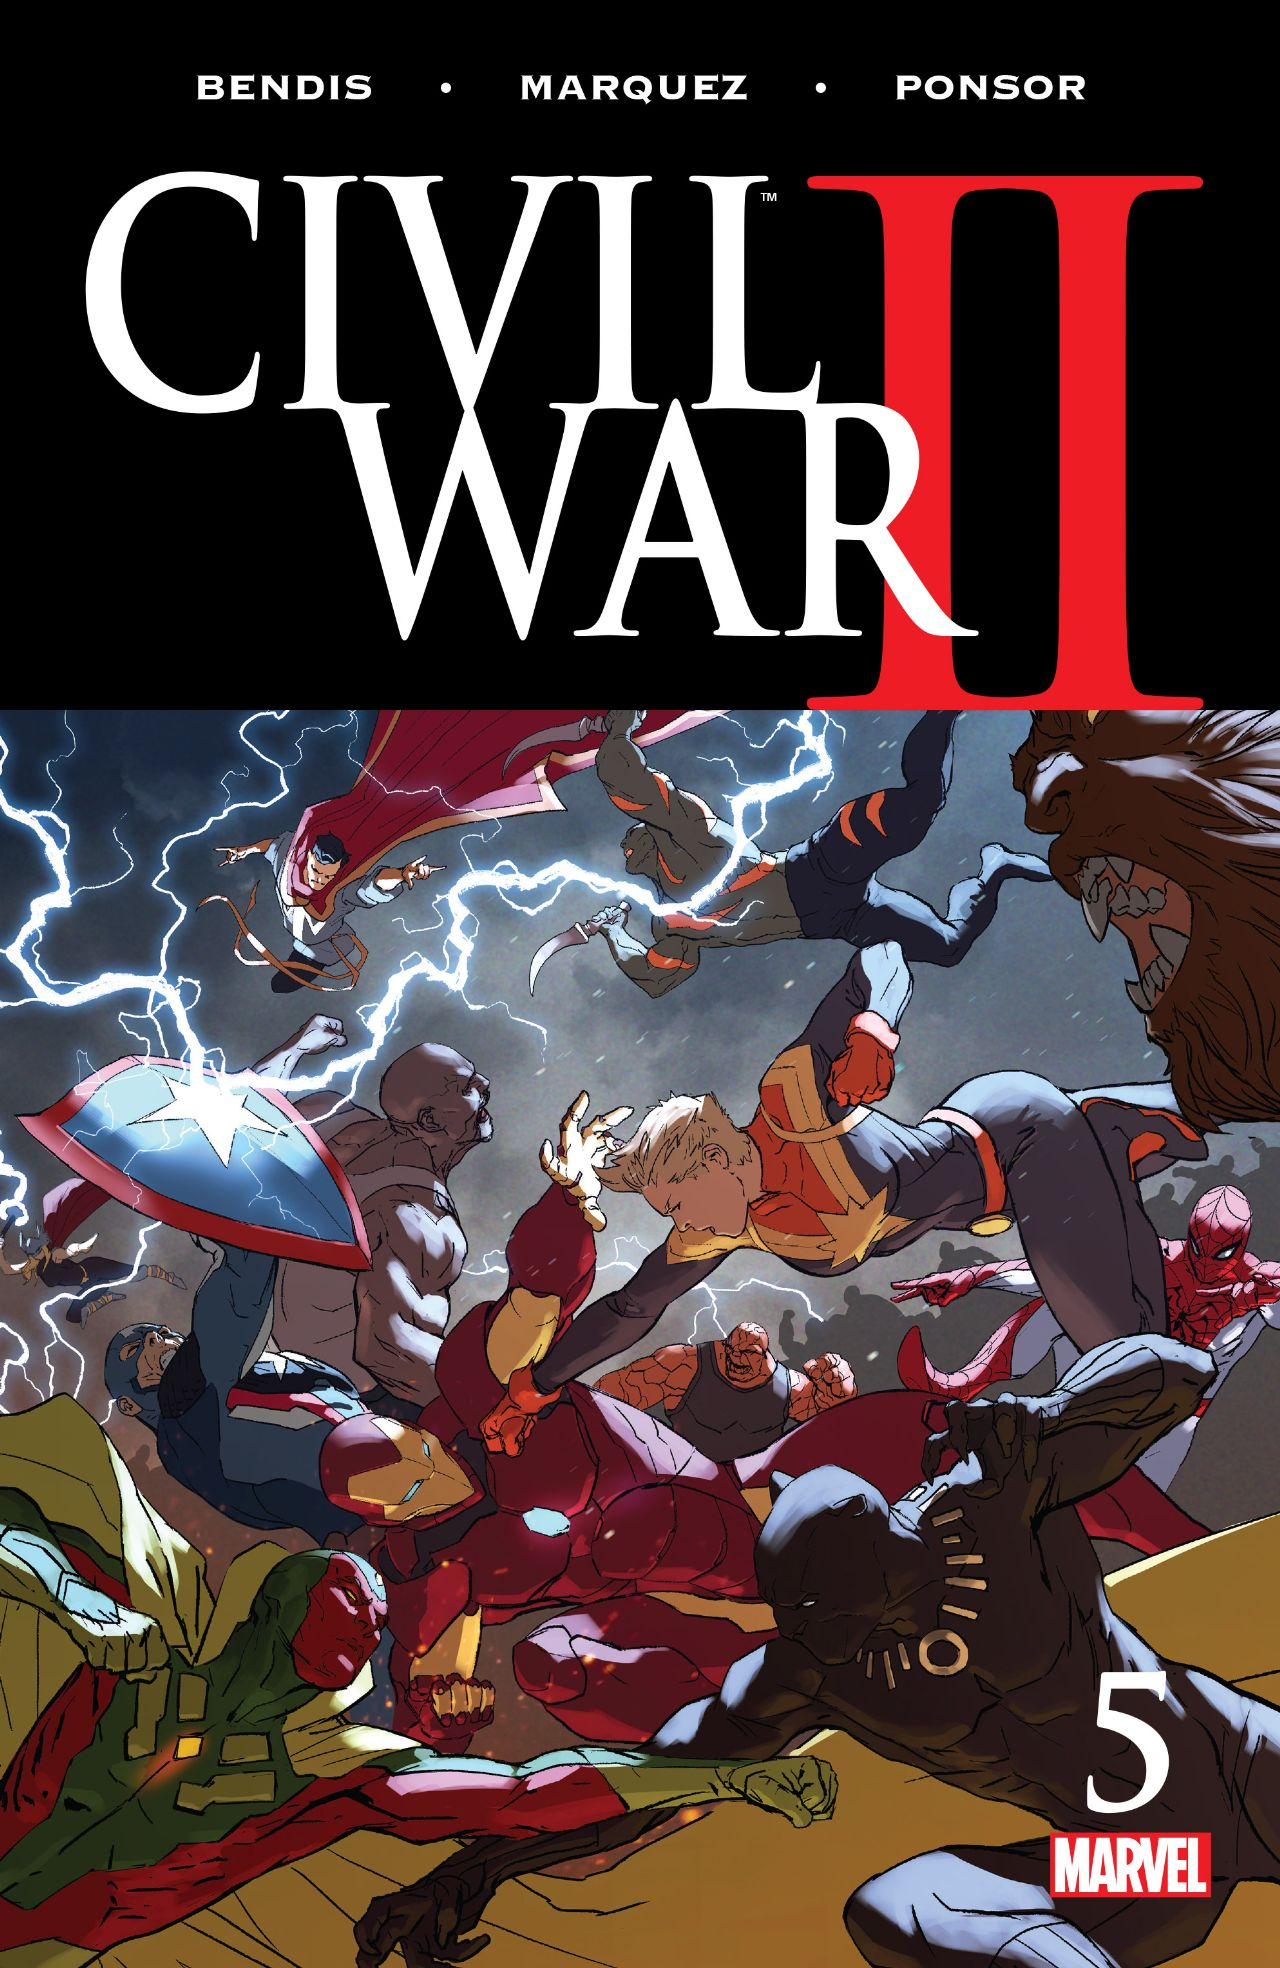 Half way through the event, marvel heroes collide in Civil War #5